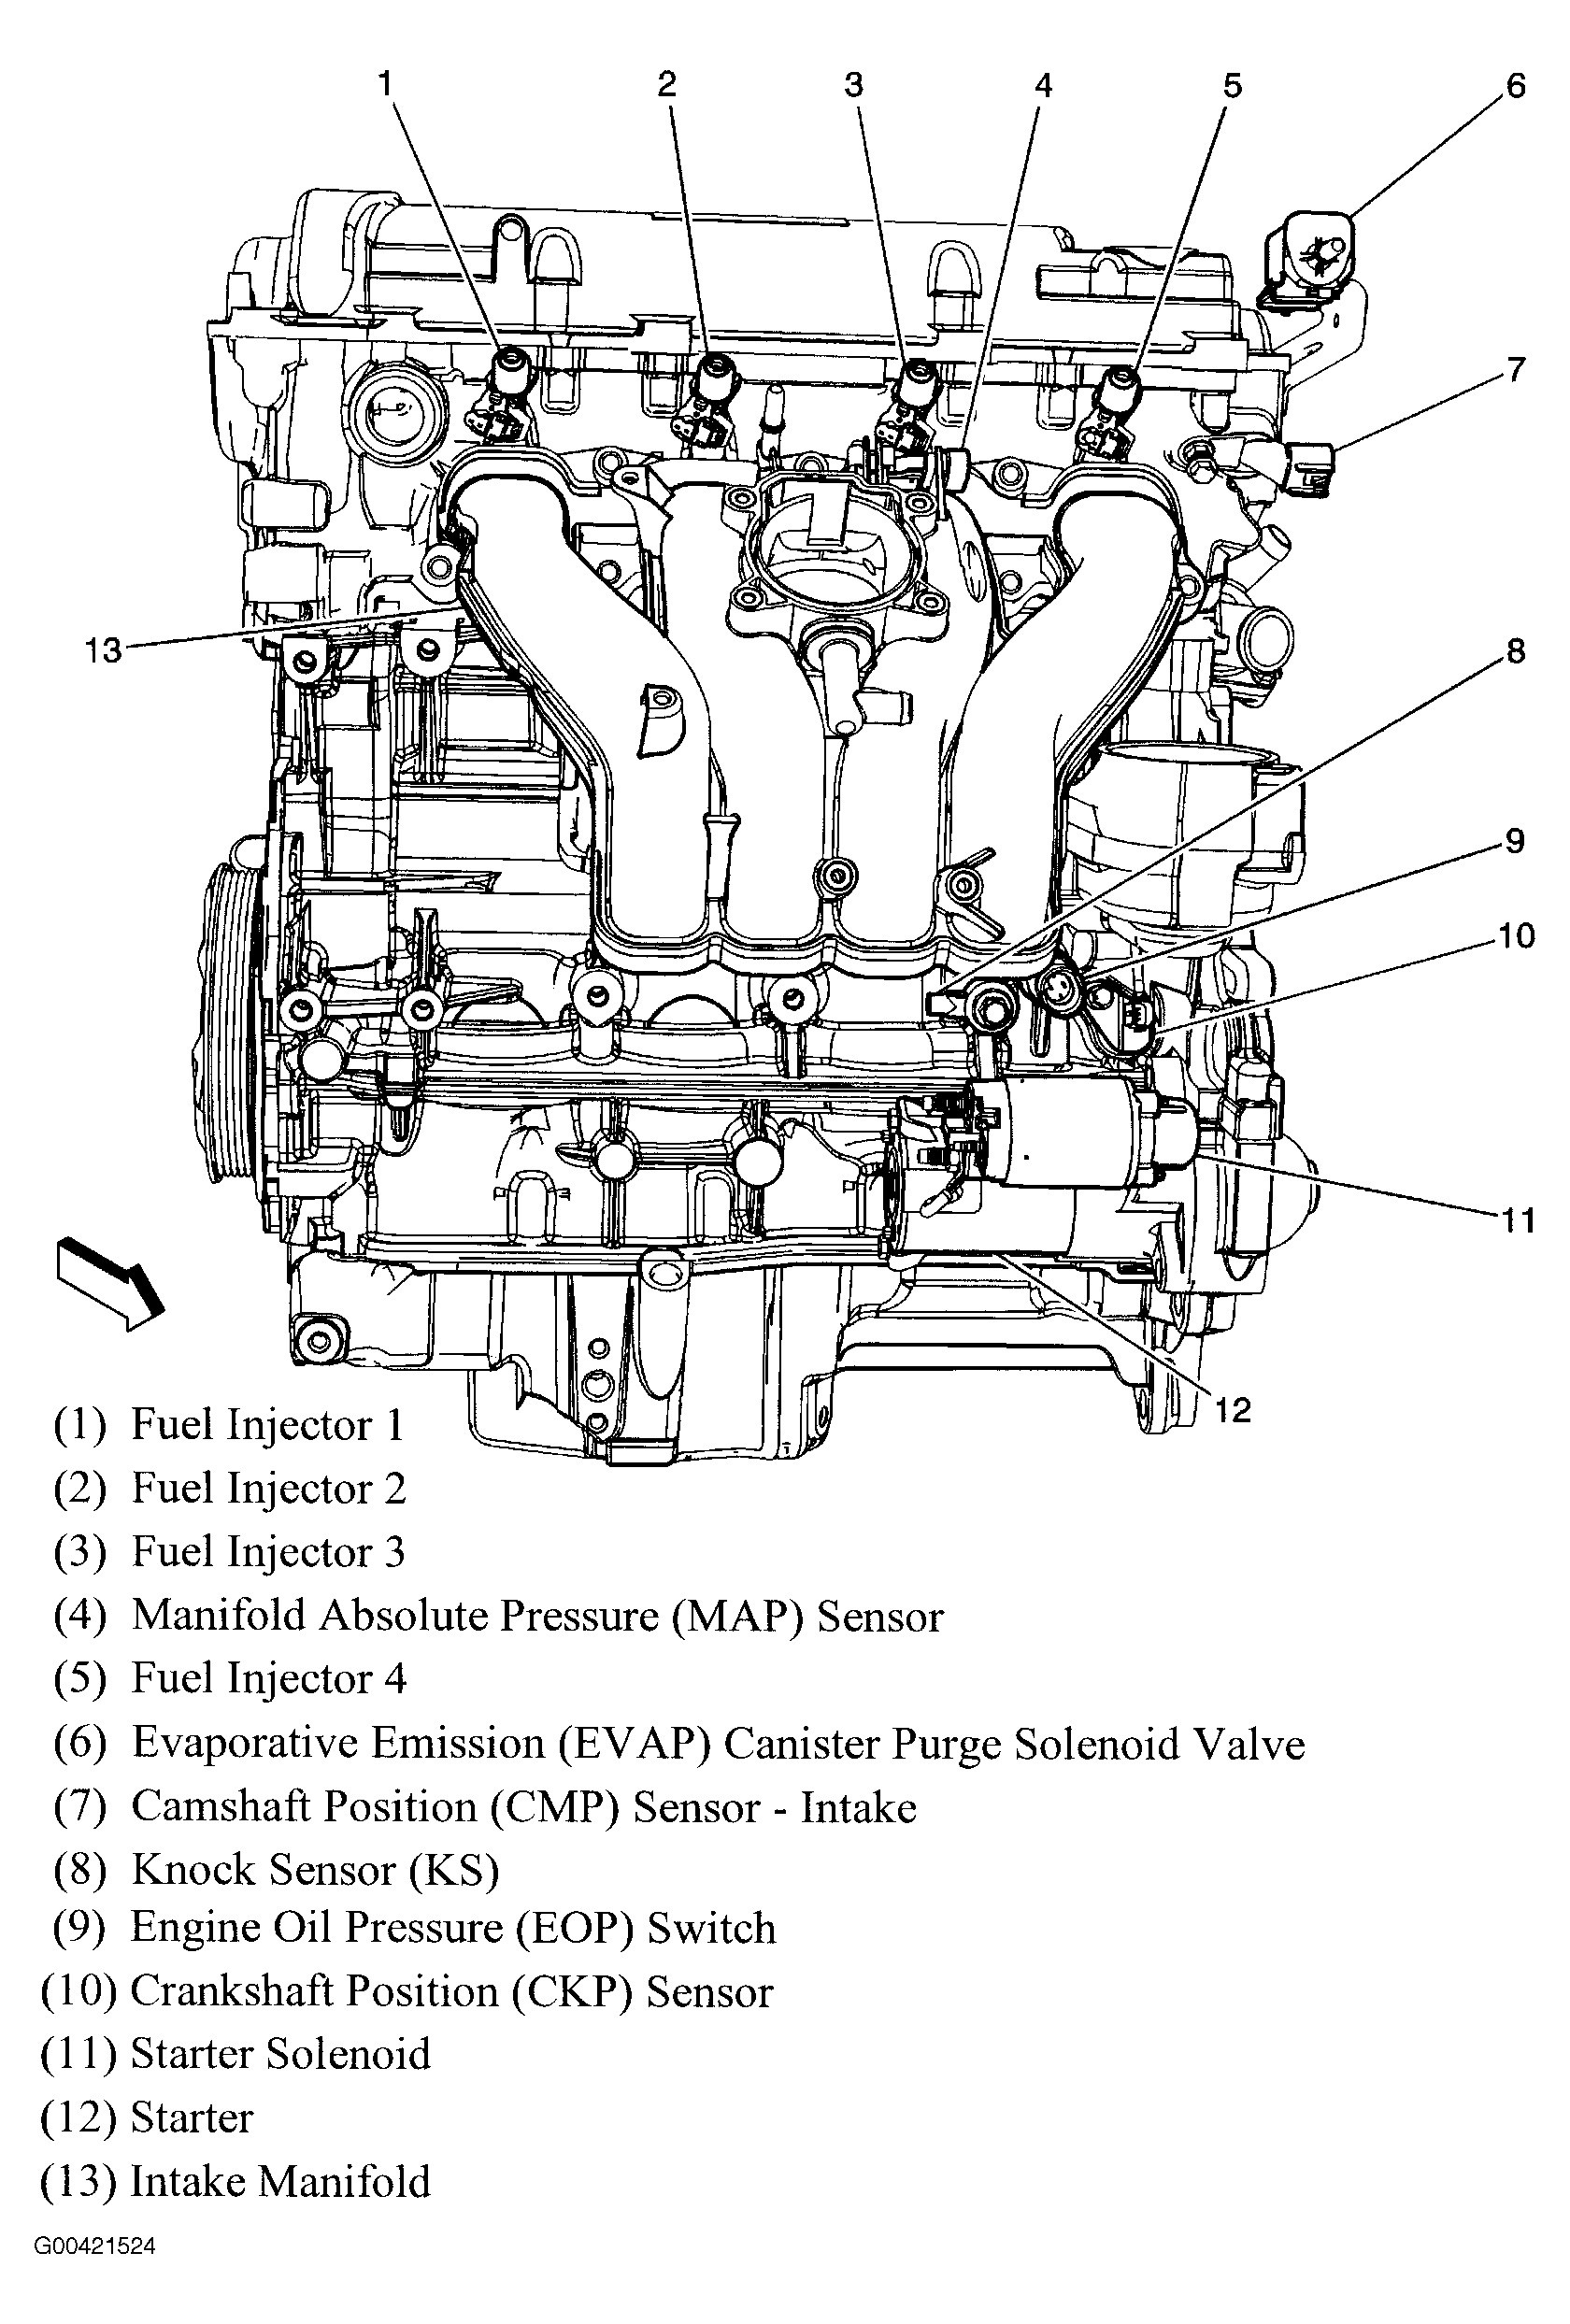 Gm 3 8 Engine Sensor Diagram Great Installation Of Wiring Buick Library Rh 12 Skriptoase De 38 Parts